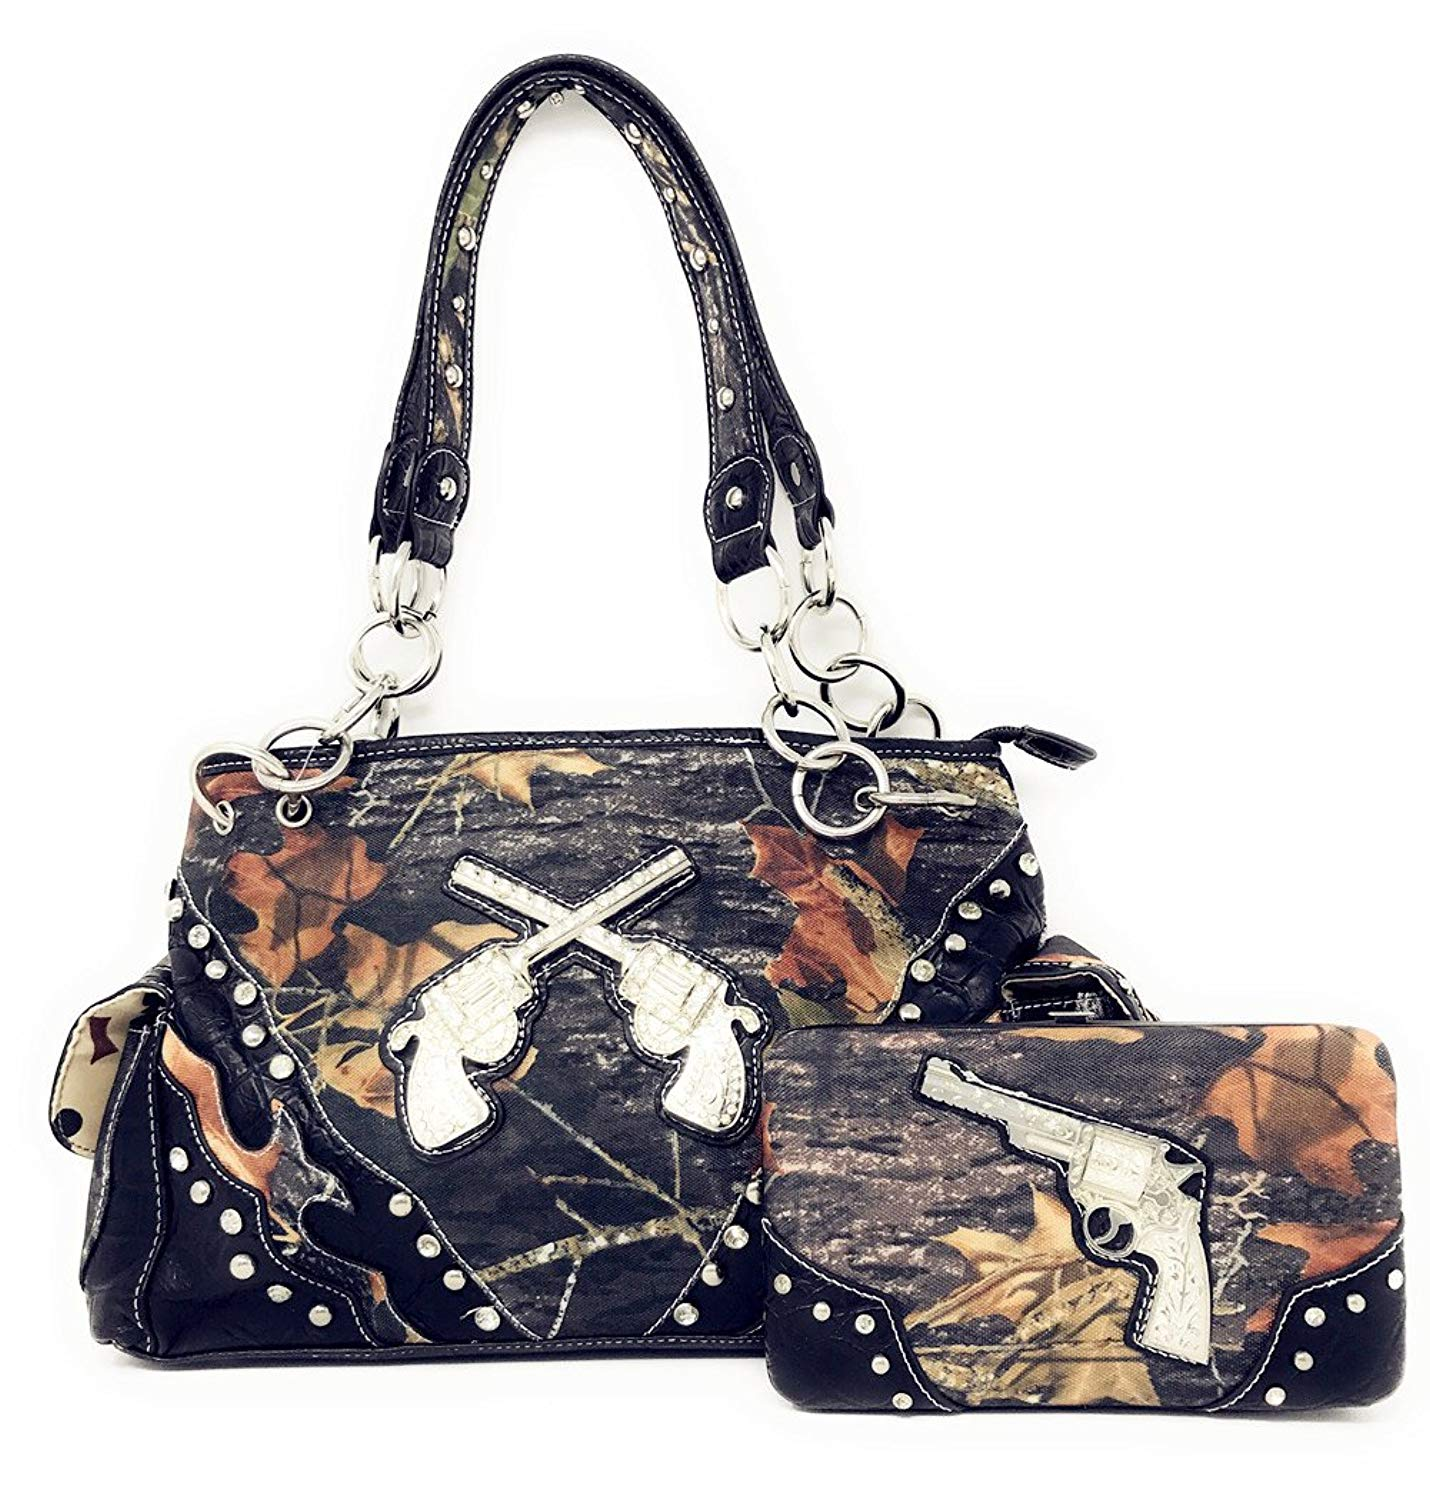 Get Quotations Camouflage Rhinestone Pistol Women S Handbag Purse And Matching Wallet A11 5117 In Black Brown